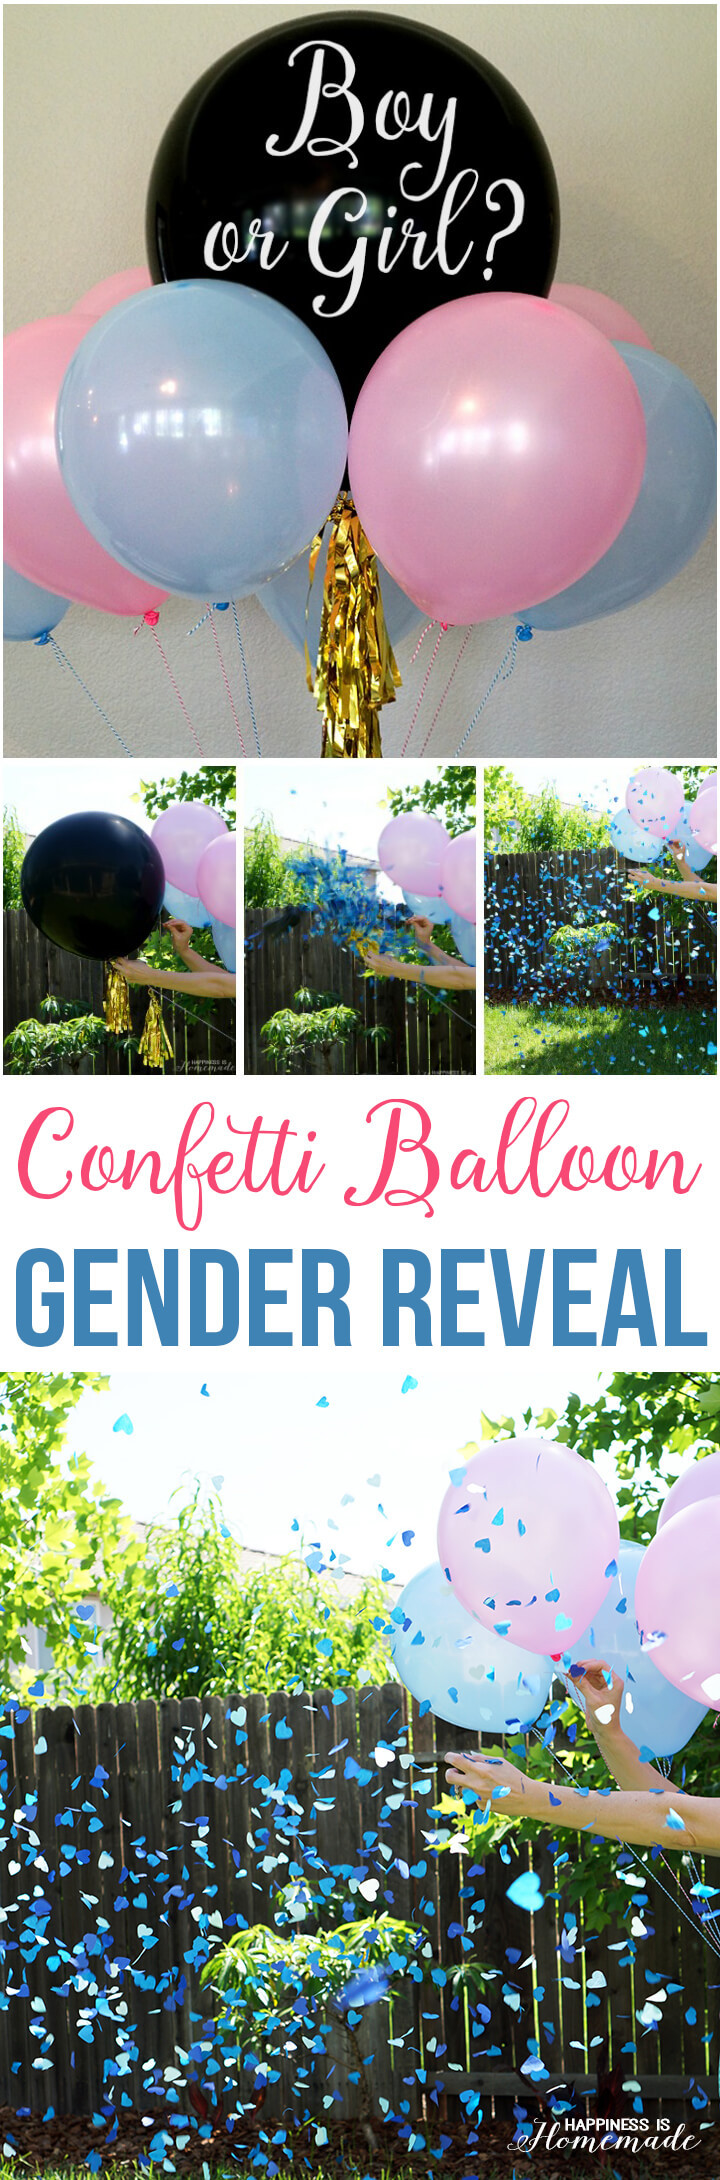 Different Gender Reveal Party Ideas  Baby Gender Reveal Party Ideas Happiness is Homemade